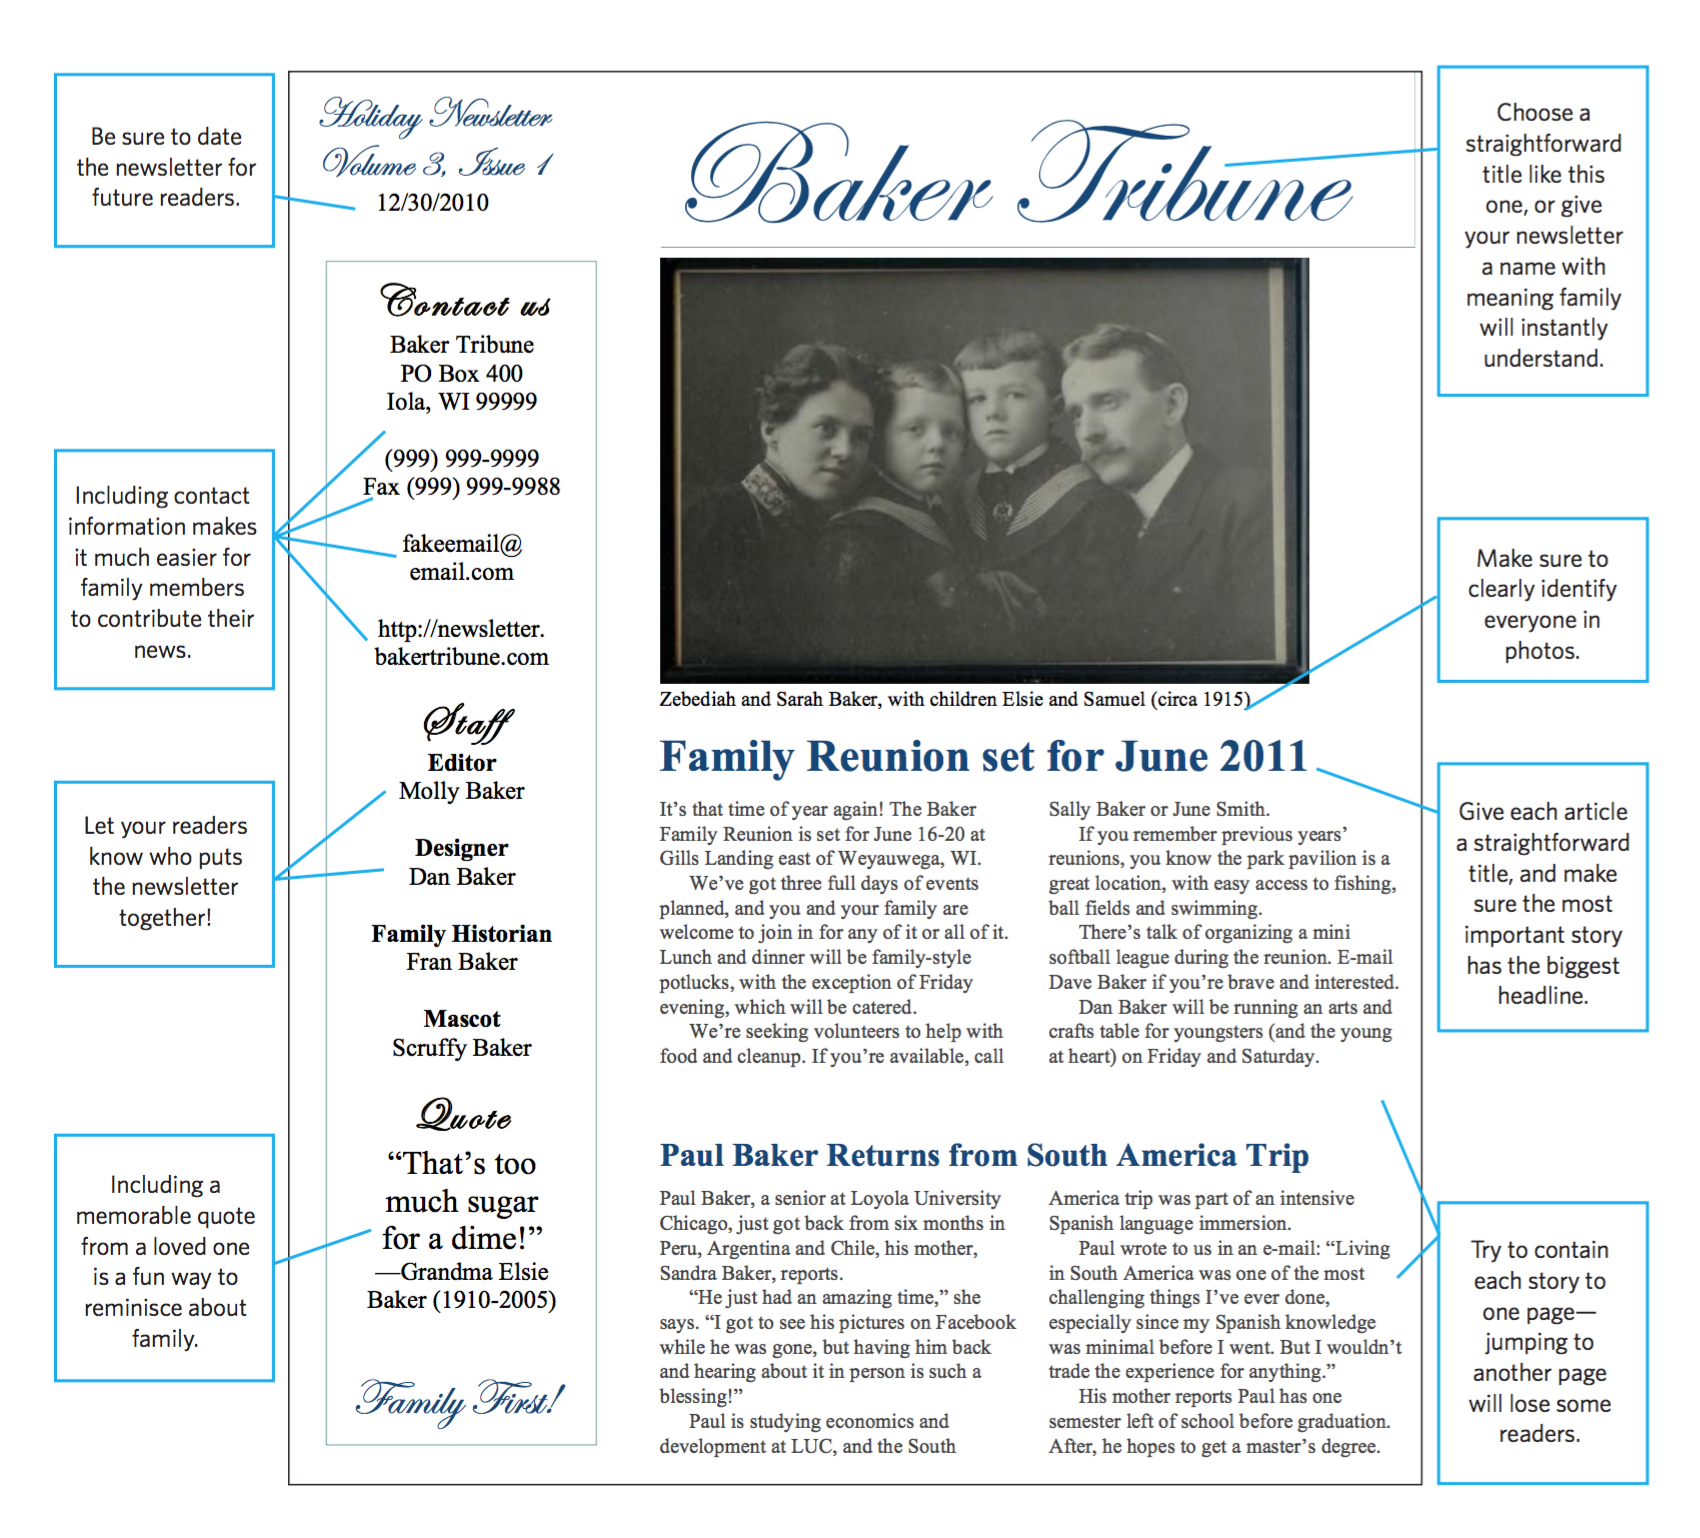 002 Template Ideas Screen Shot At Pm Family Newsletter Intended For Family Newsletter Template